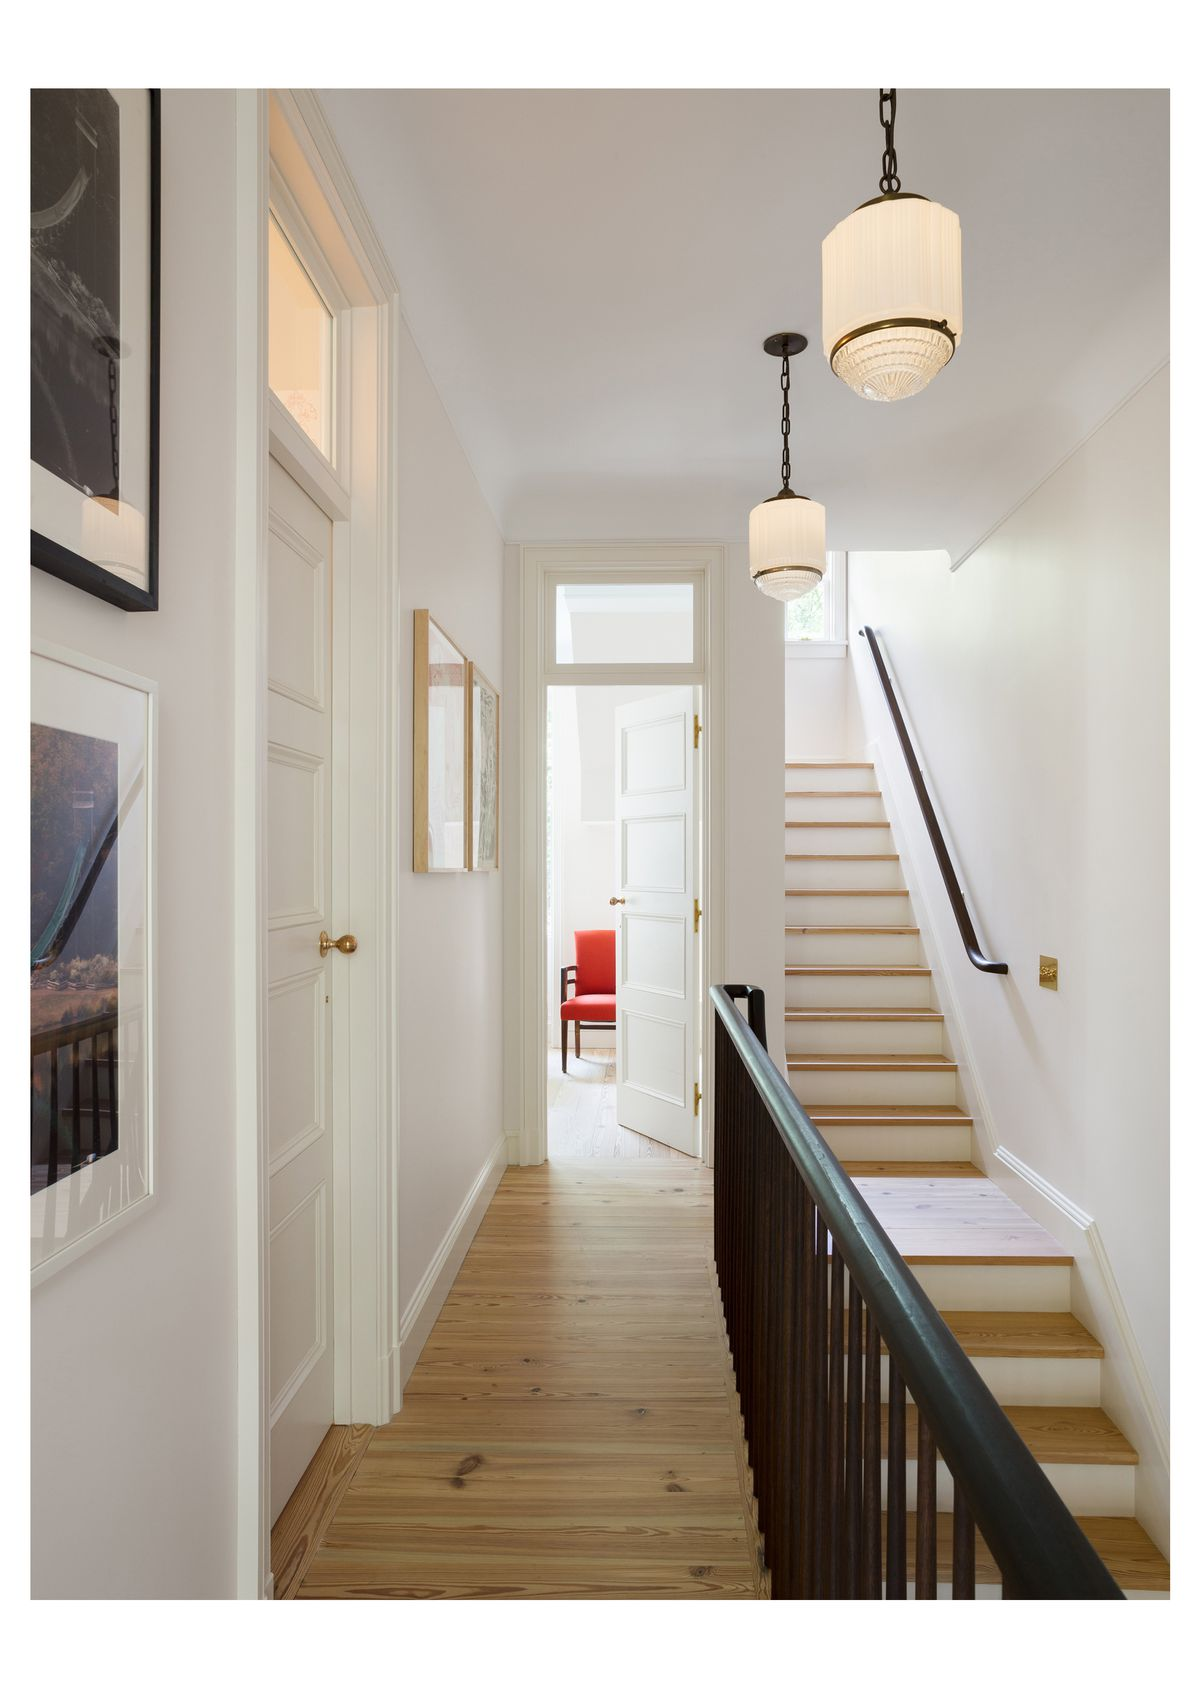 A hallway with a hardwood floor and white walls. There is a staircase with a black bannister and wooden stairs. There are hanging light fixtures. At the end of the hallway is a doorway where the door is open. There is a red chair in the room with the open